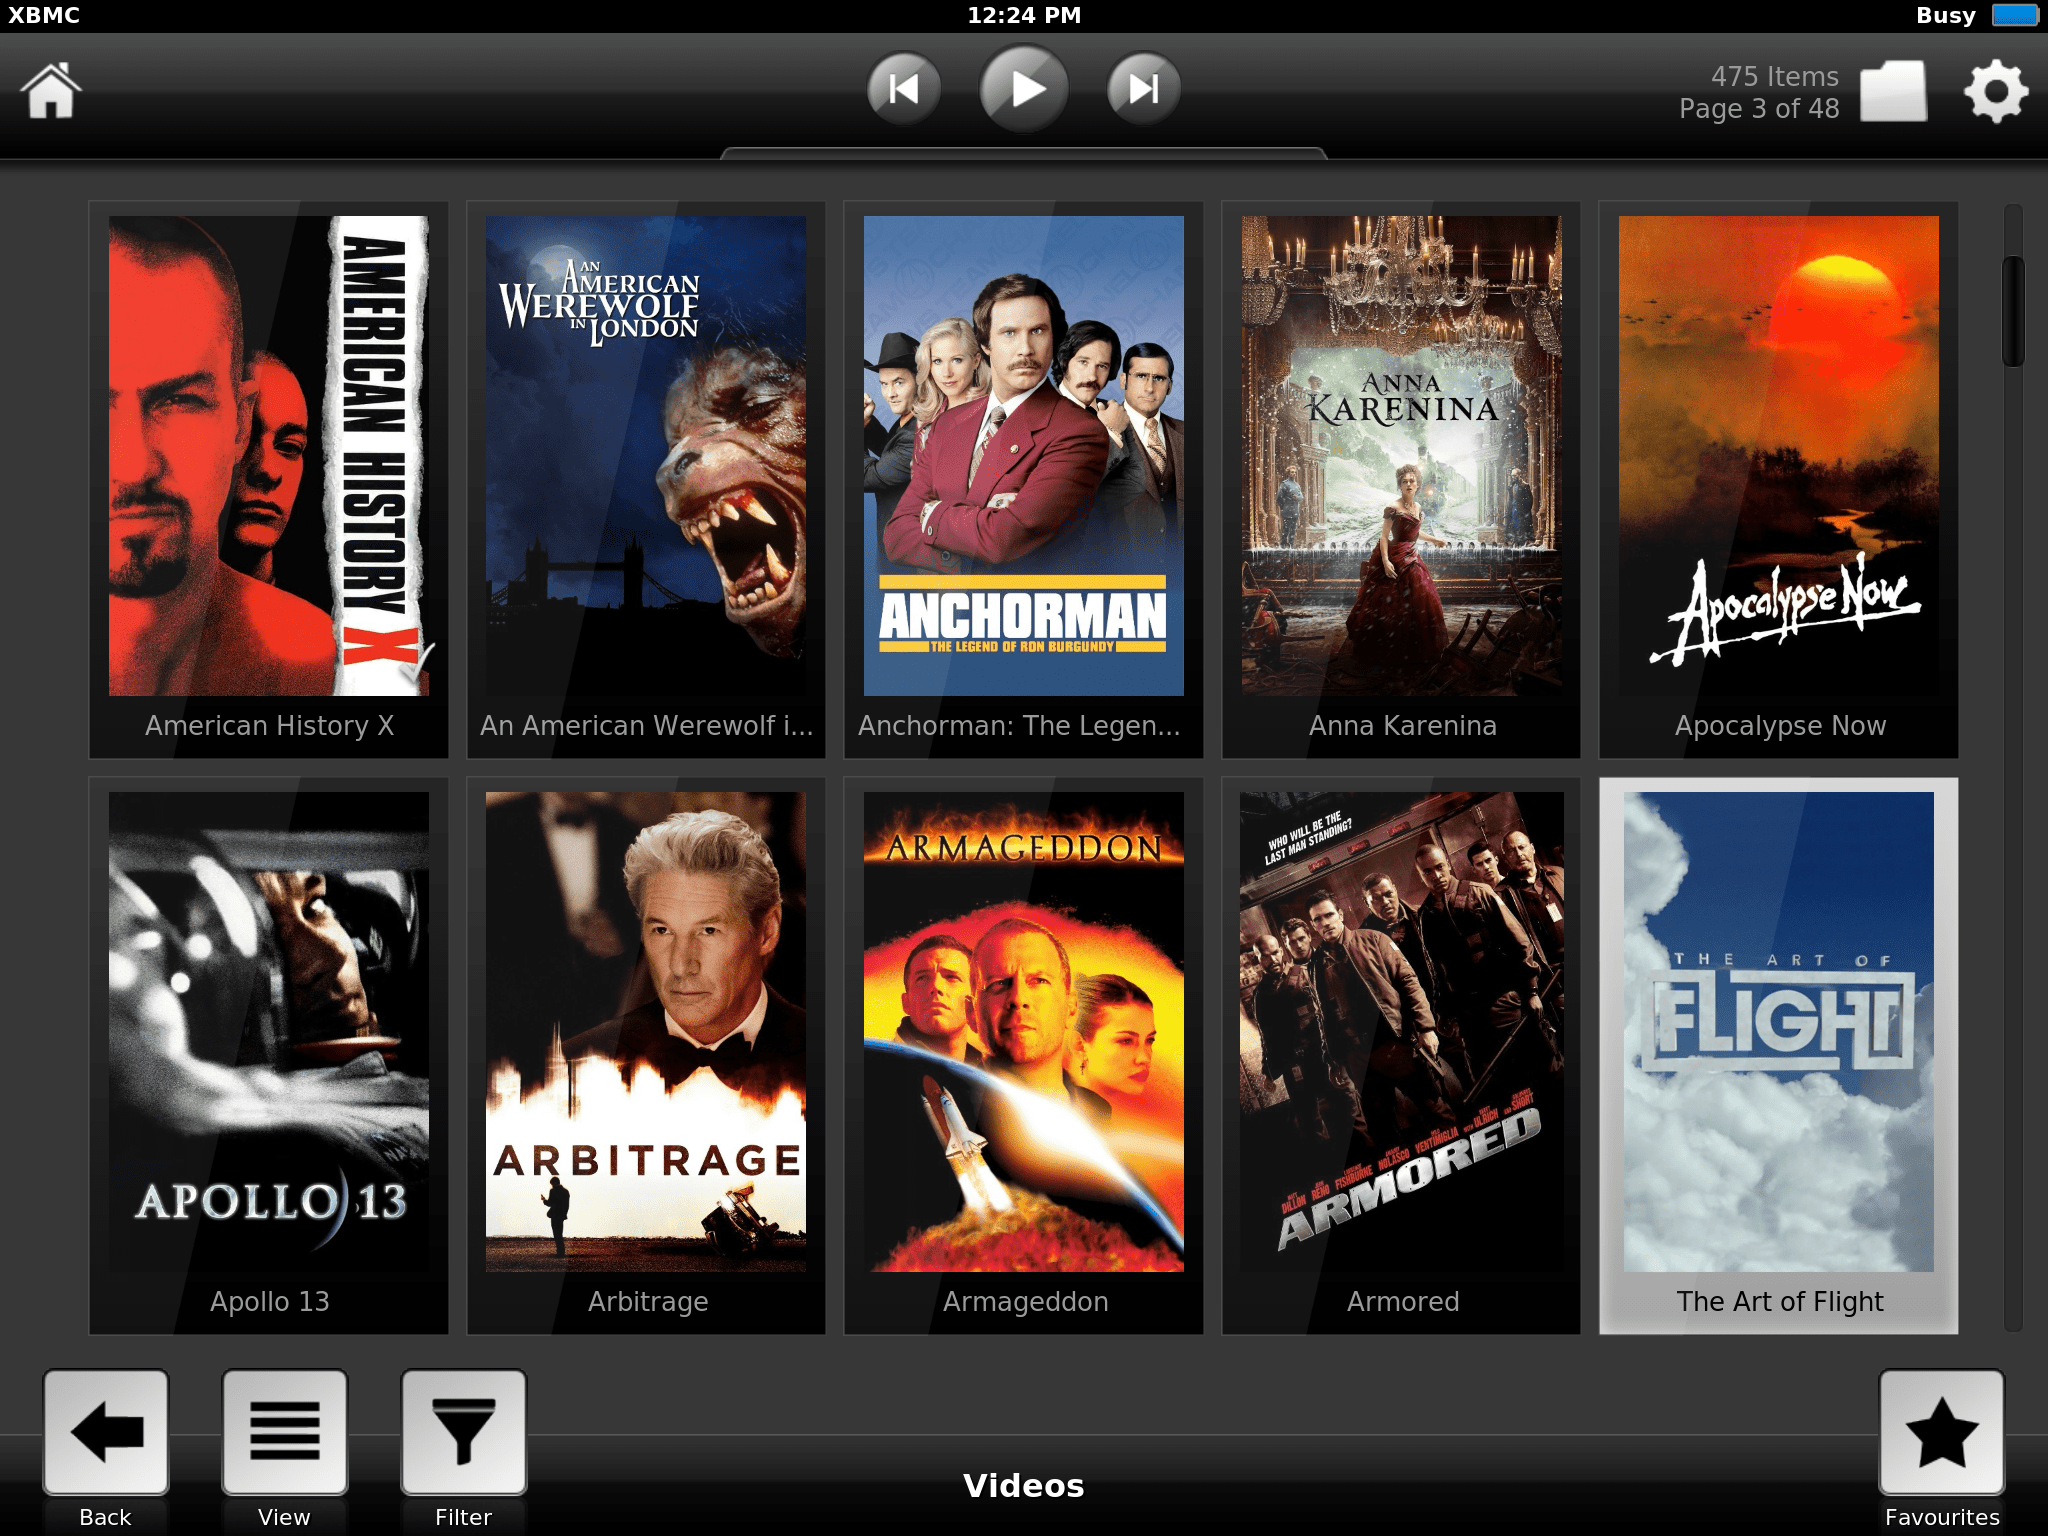 Connect XBMC iPad/iPod/iPhone to our XBMC Media Center Server